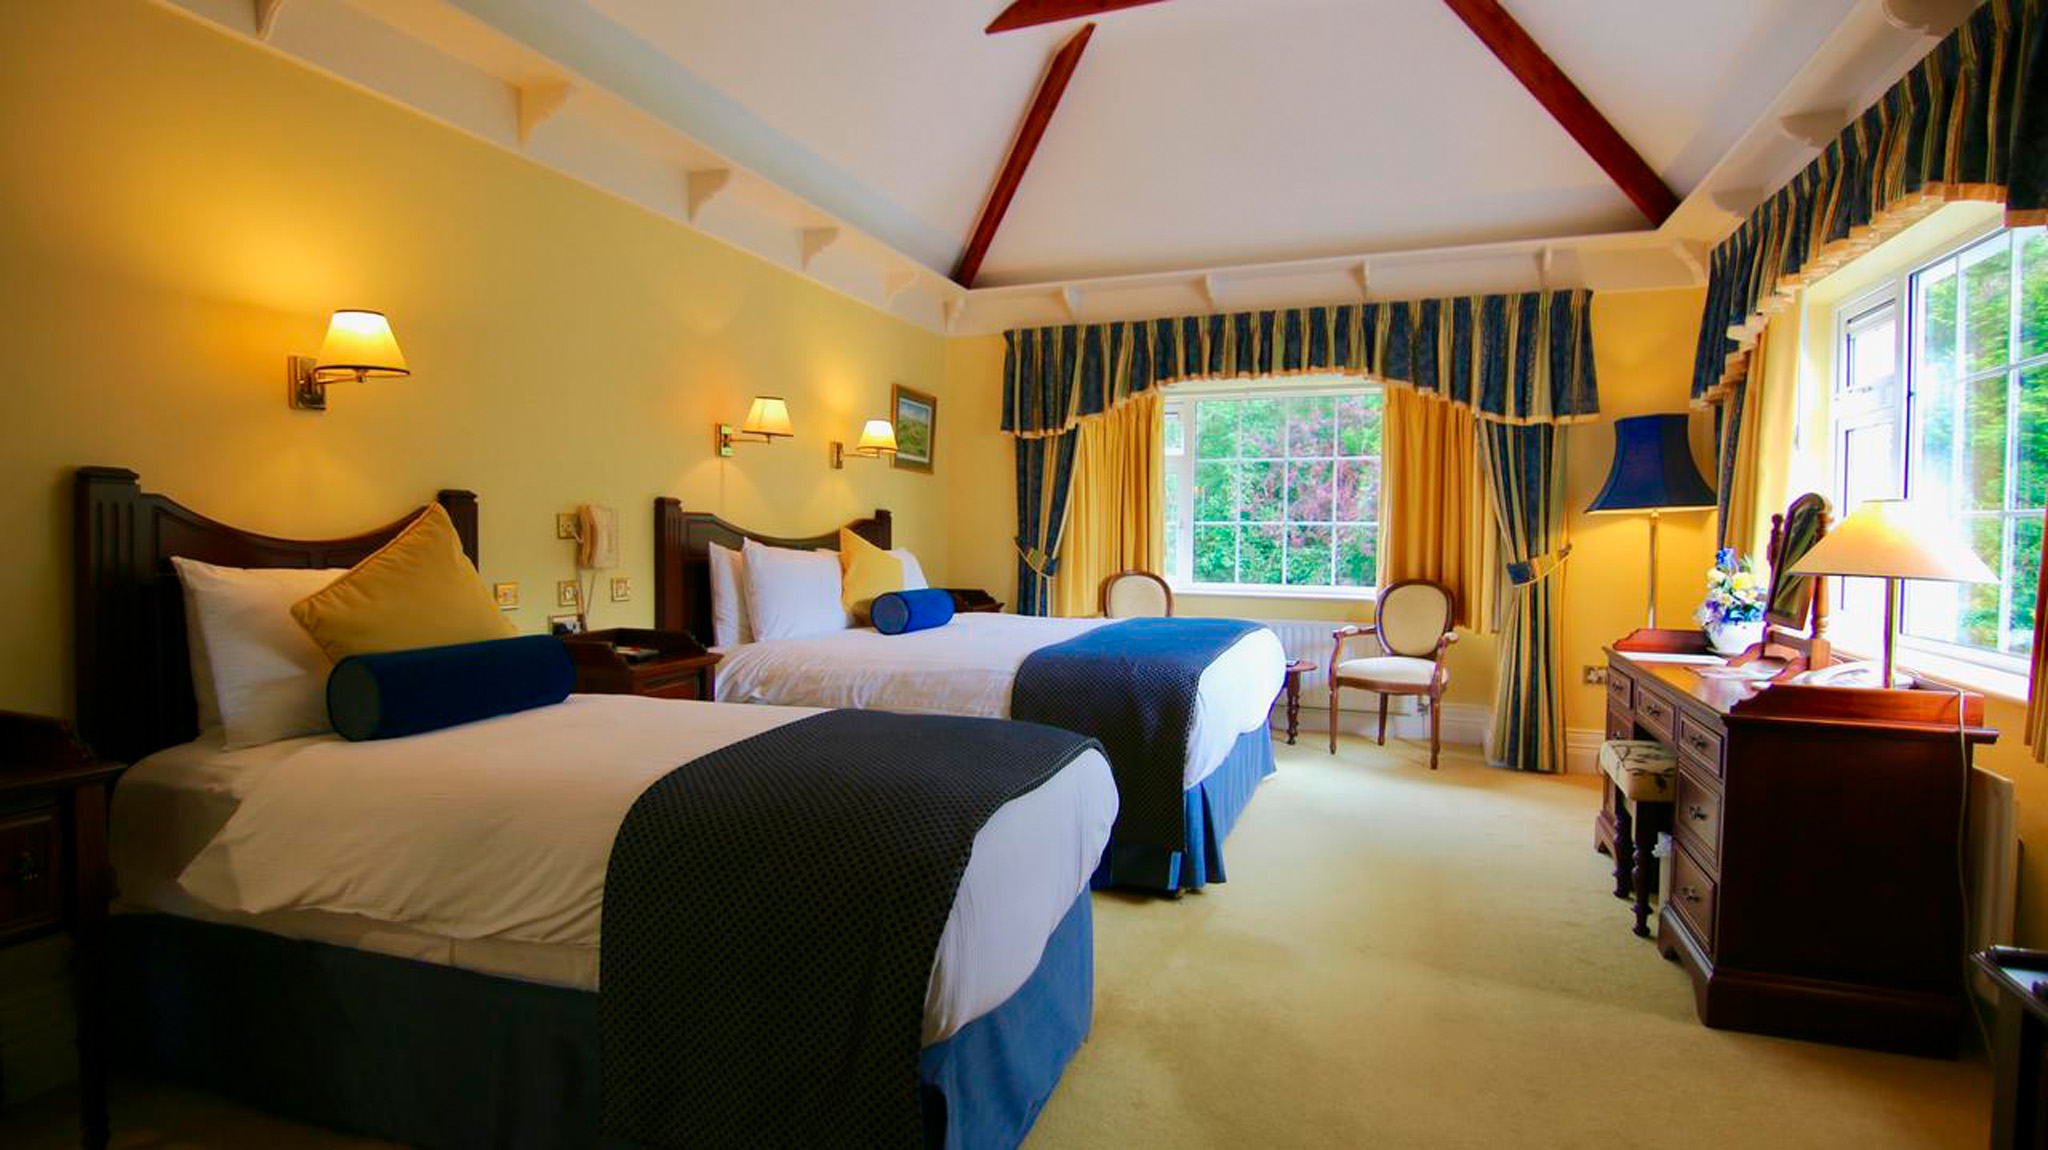 Killeen House Hotel | Aghadoe , Lakes of Killarney, Co Kerry | Photos 2